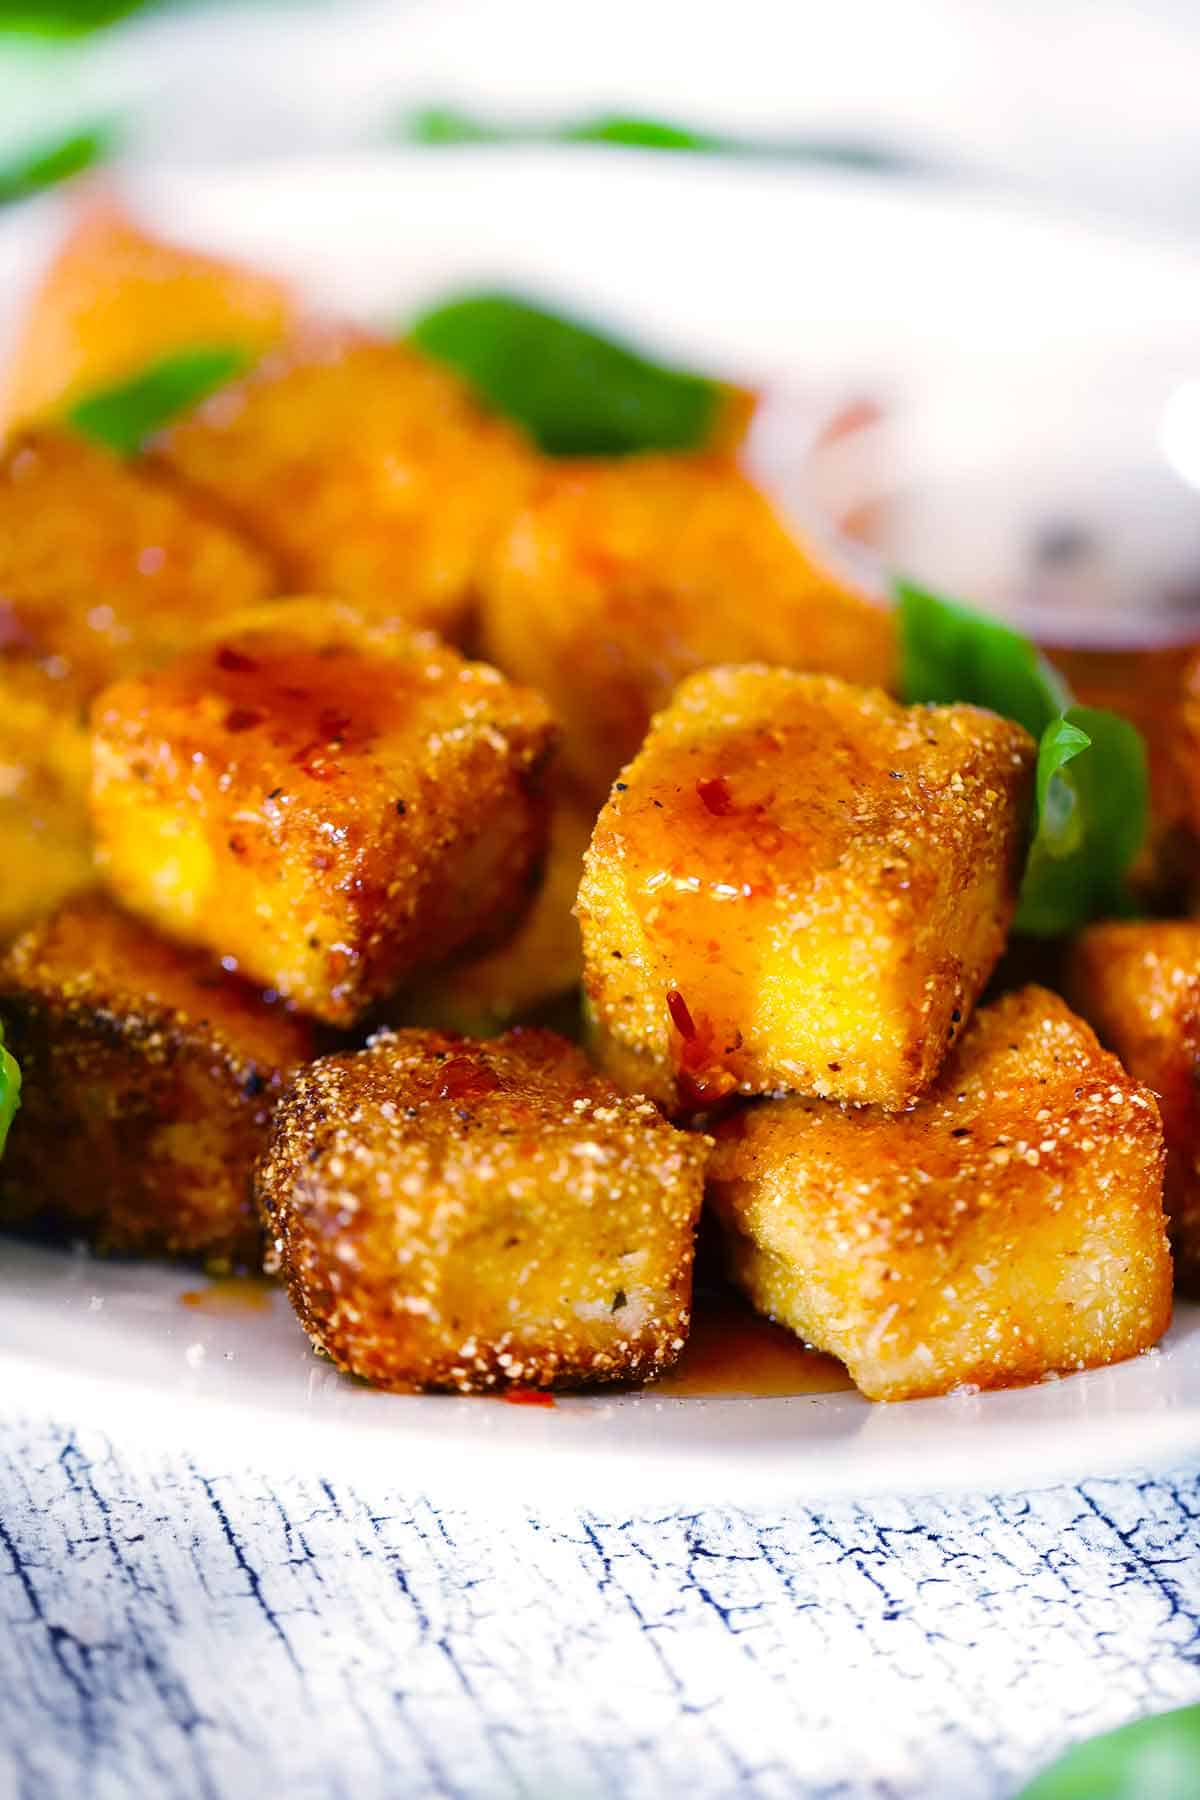 Close up photo of fried halloumi nuggets with hot honey dripping off the side.